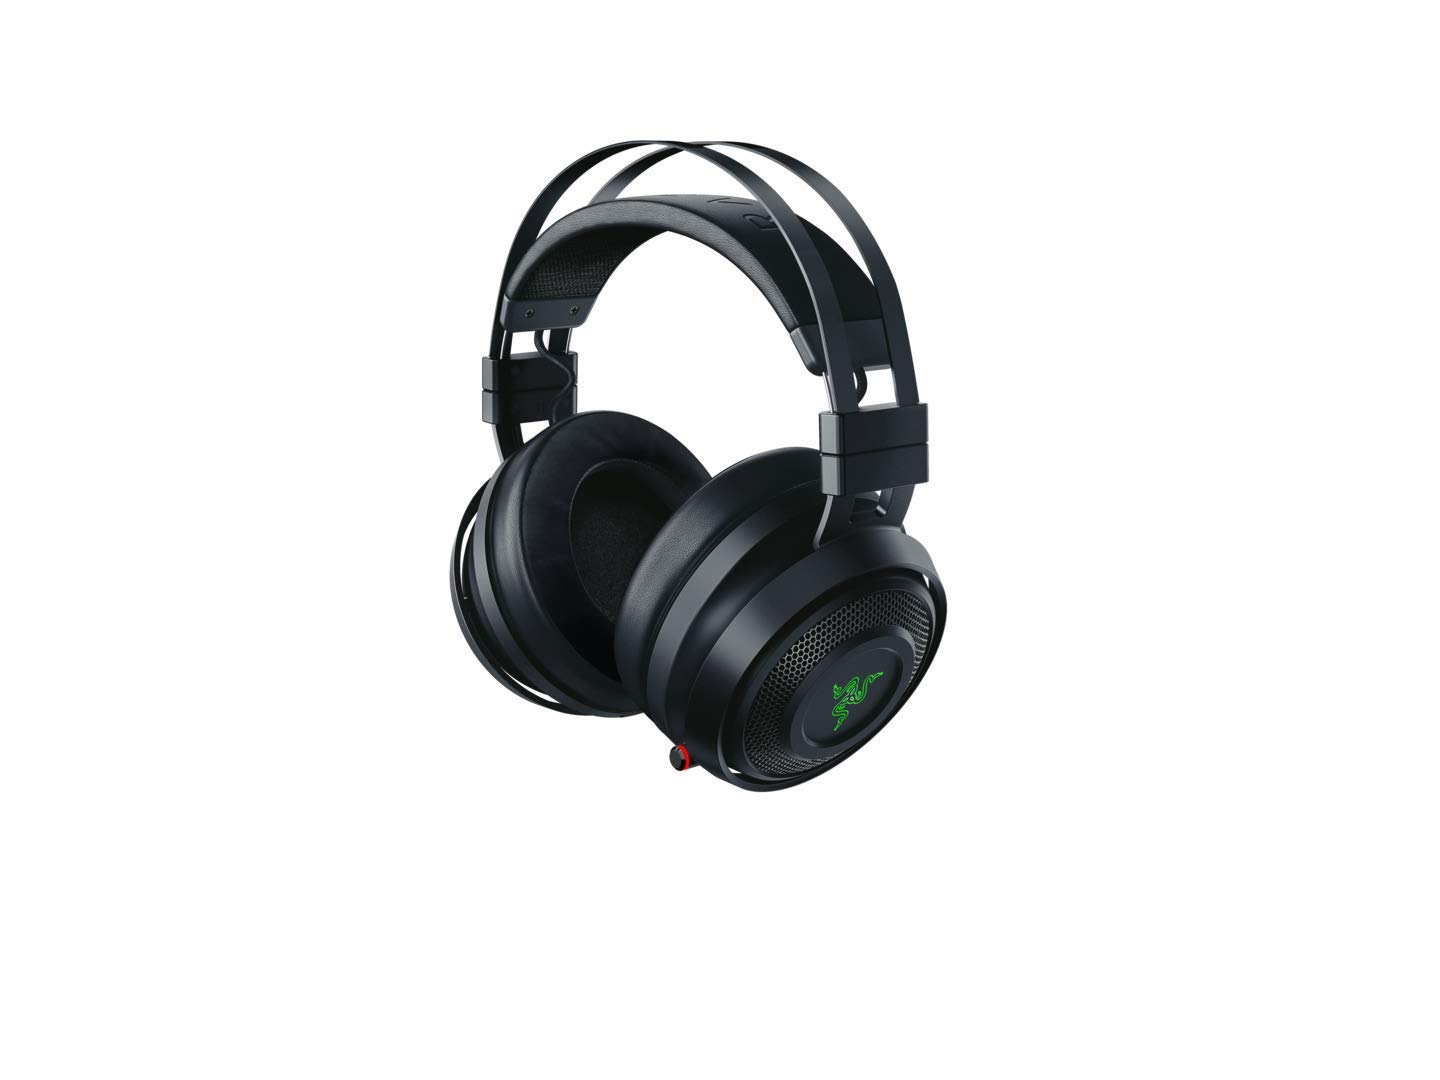 Razer Nari Wireless: THX Spatial Audio - Cooling Gel-Infused Cushions - 2.4GHz Wireless Audio - Gaming Headset Works for PC, PS4, Switch & Mobile Devices (Certified Refurbished) Razer USA Ltd